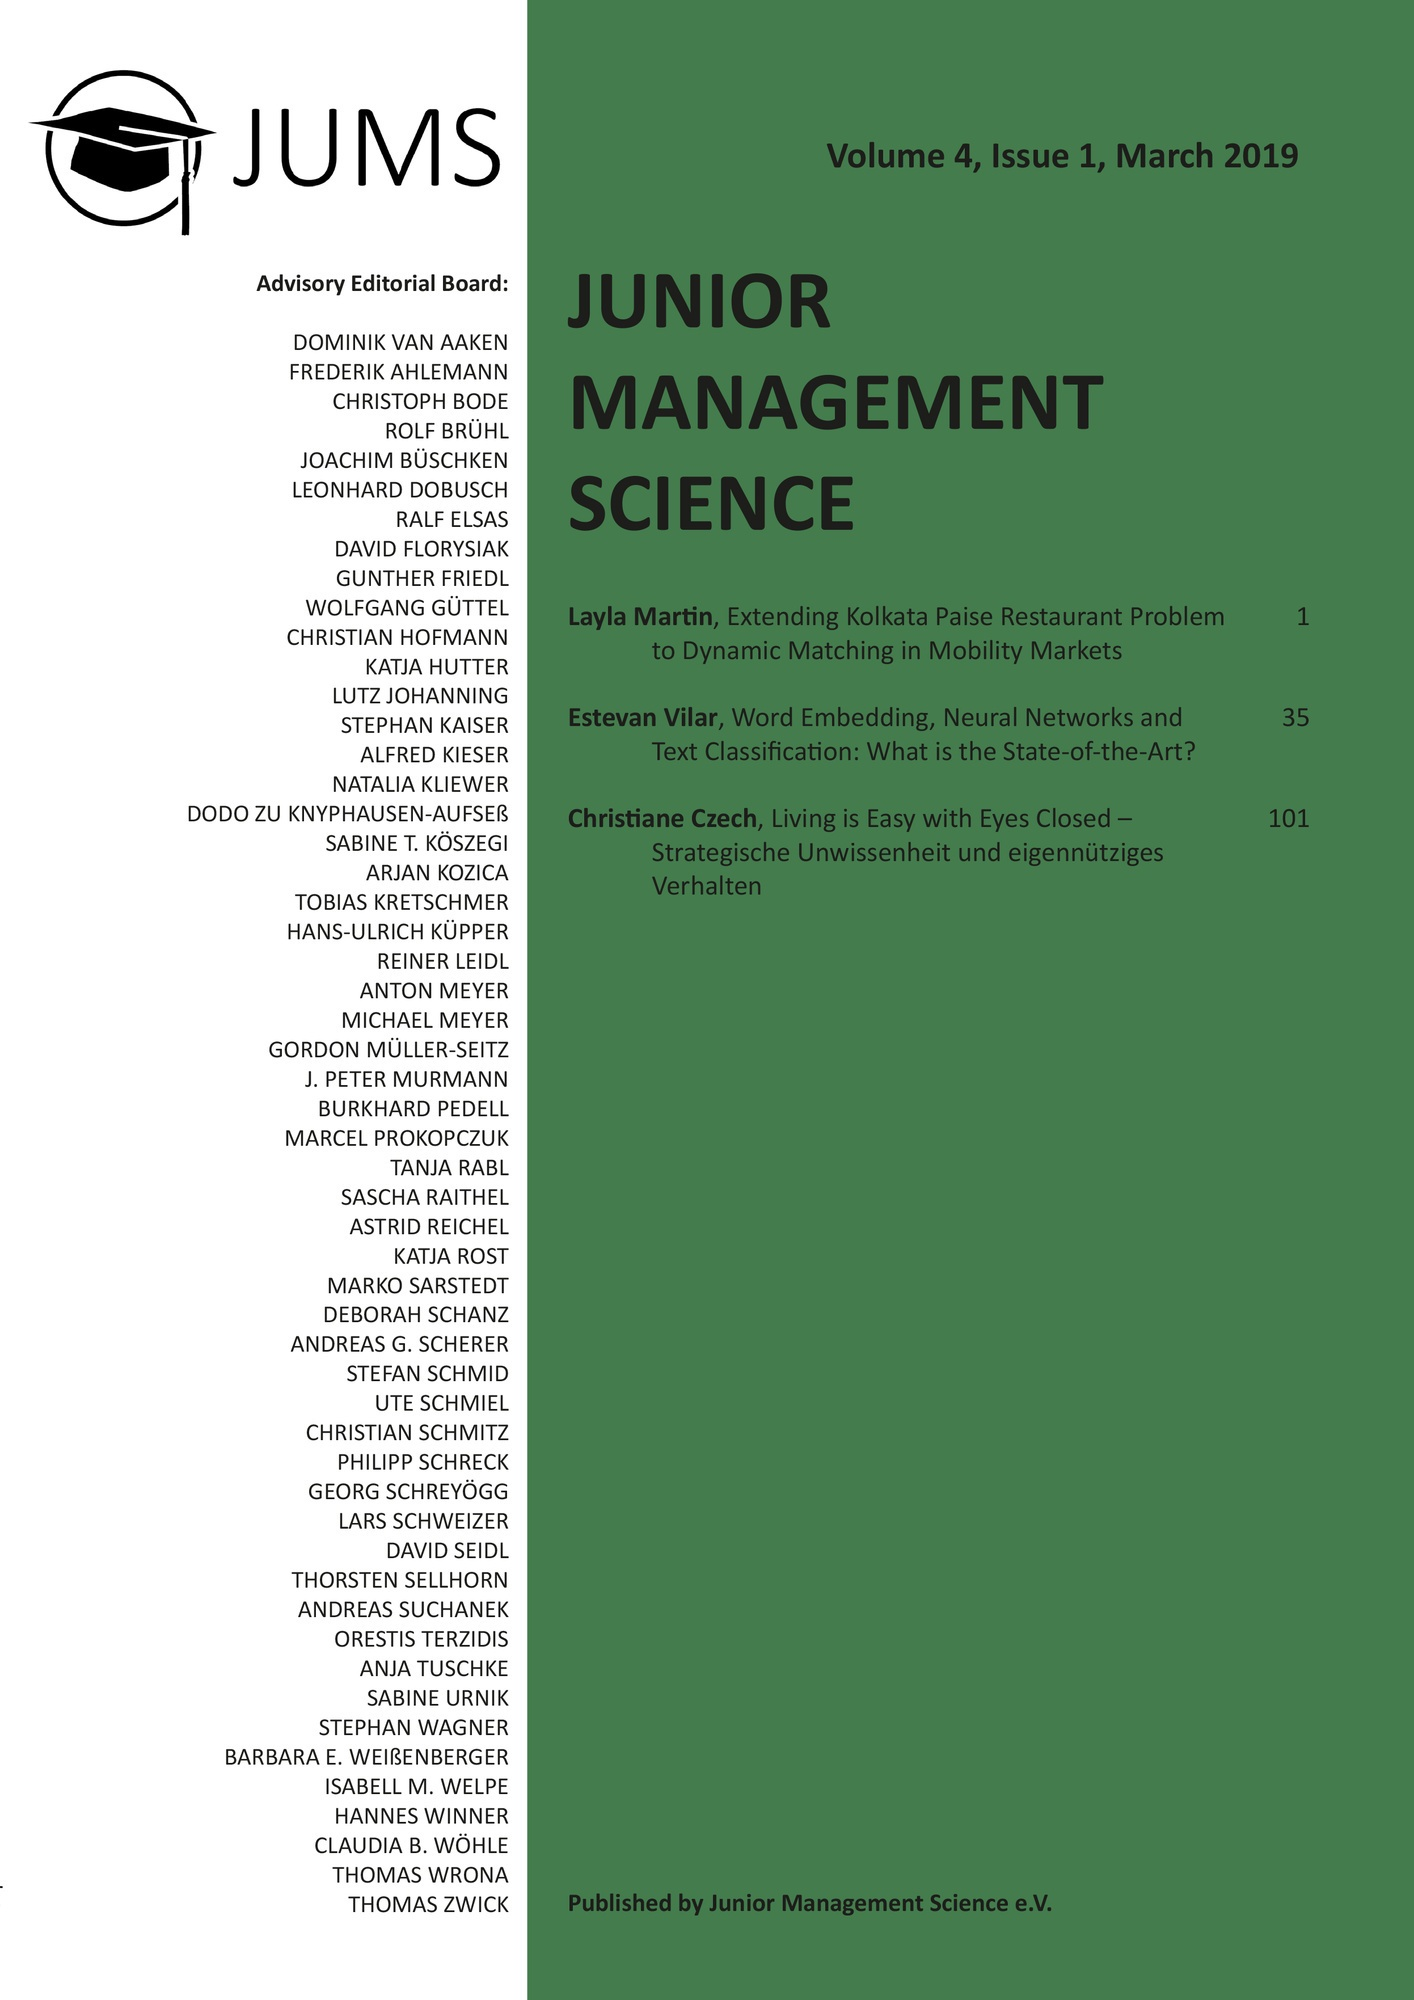 Titel: Junior Management Science, Volume 4, Issue 1, March 2019